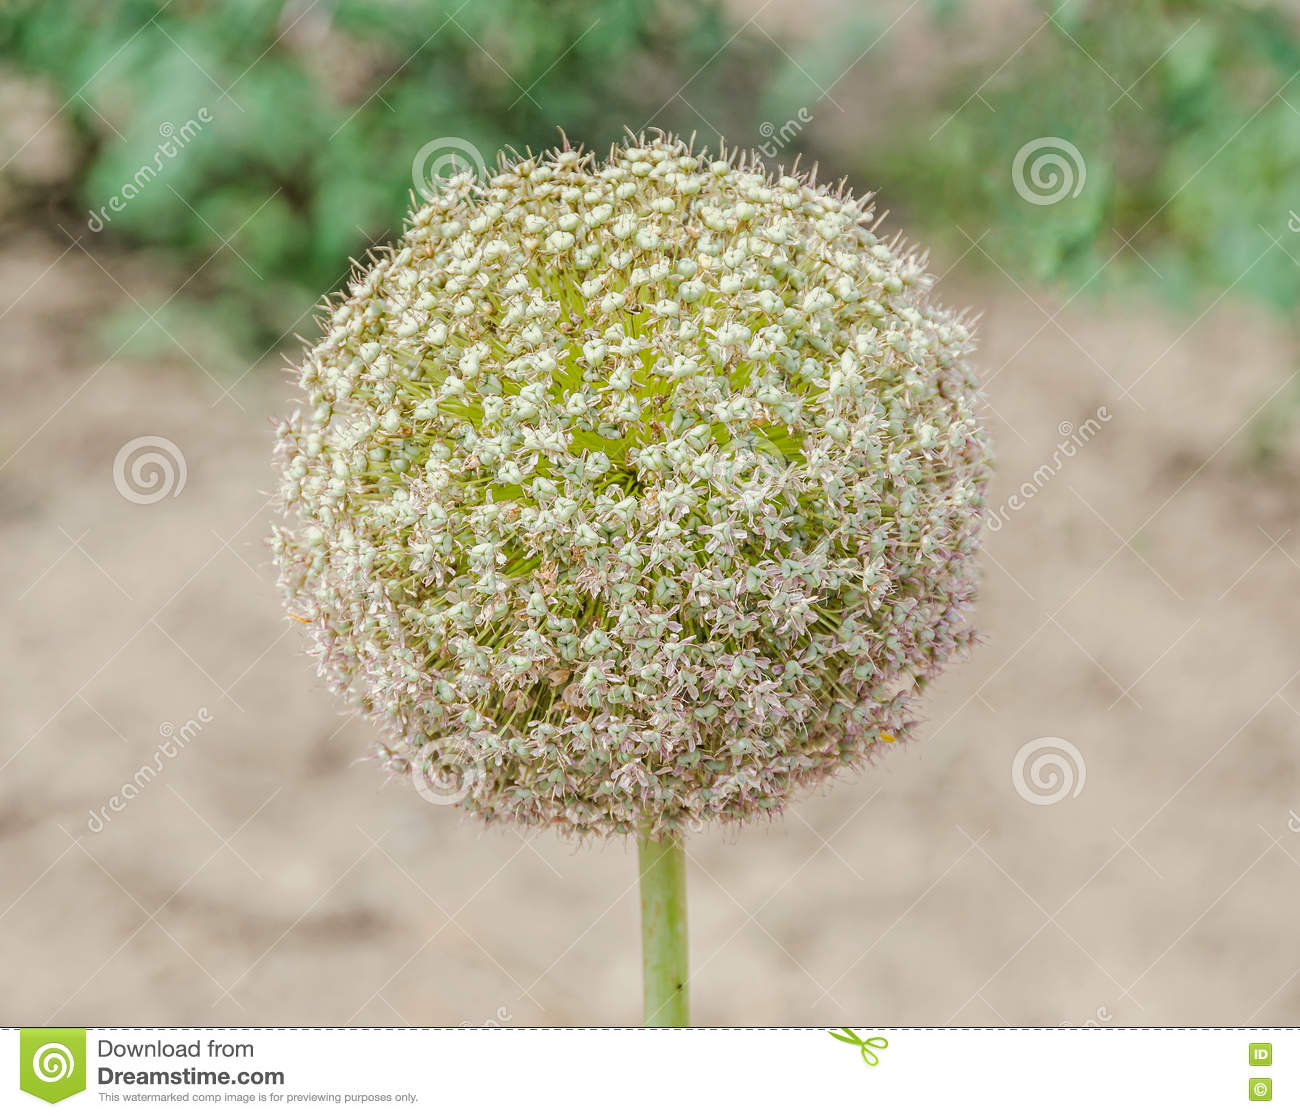 White Allium Flowers Ball Flower Genus Of Monocotyledonous Stock